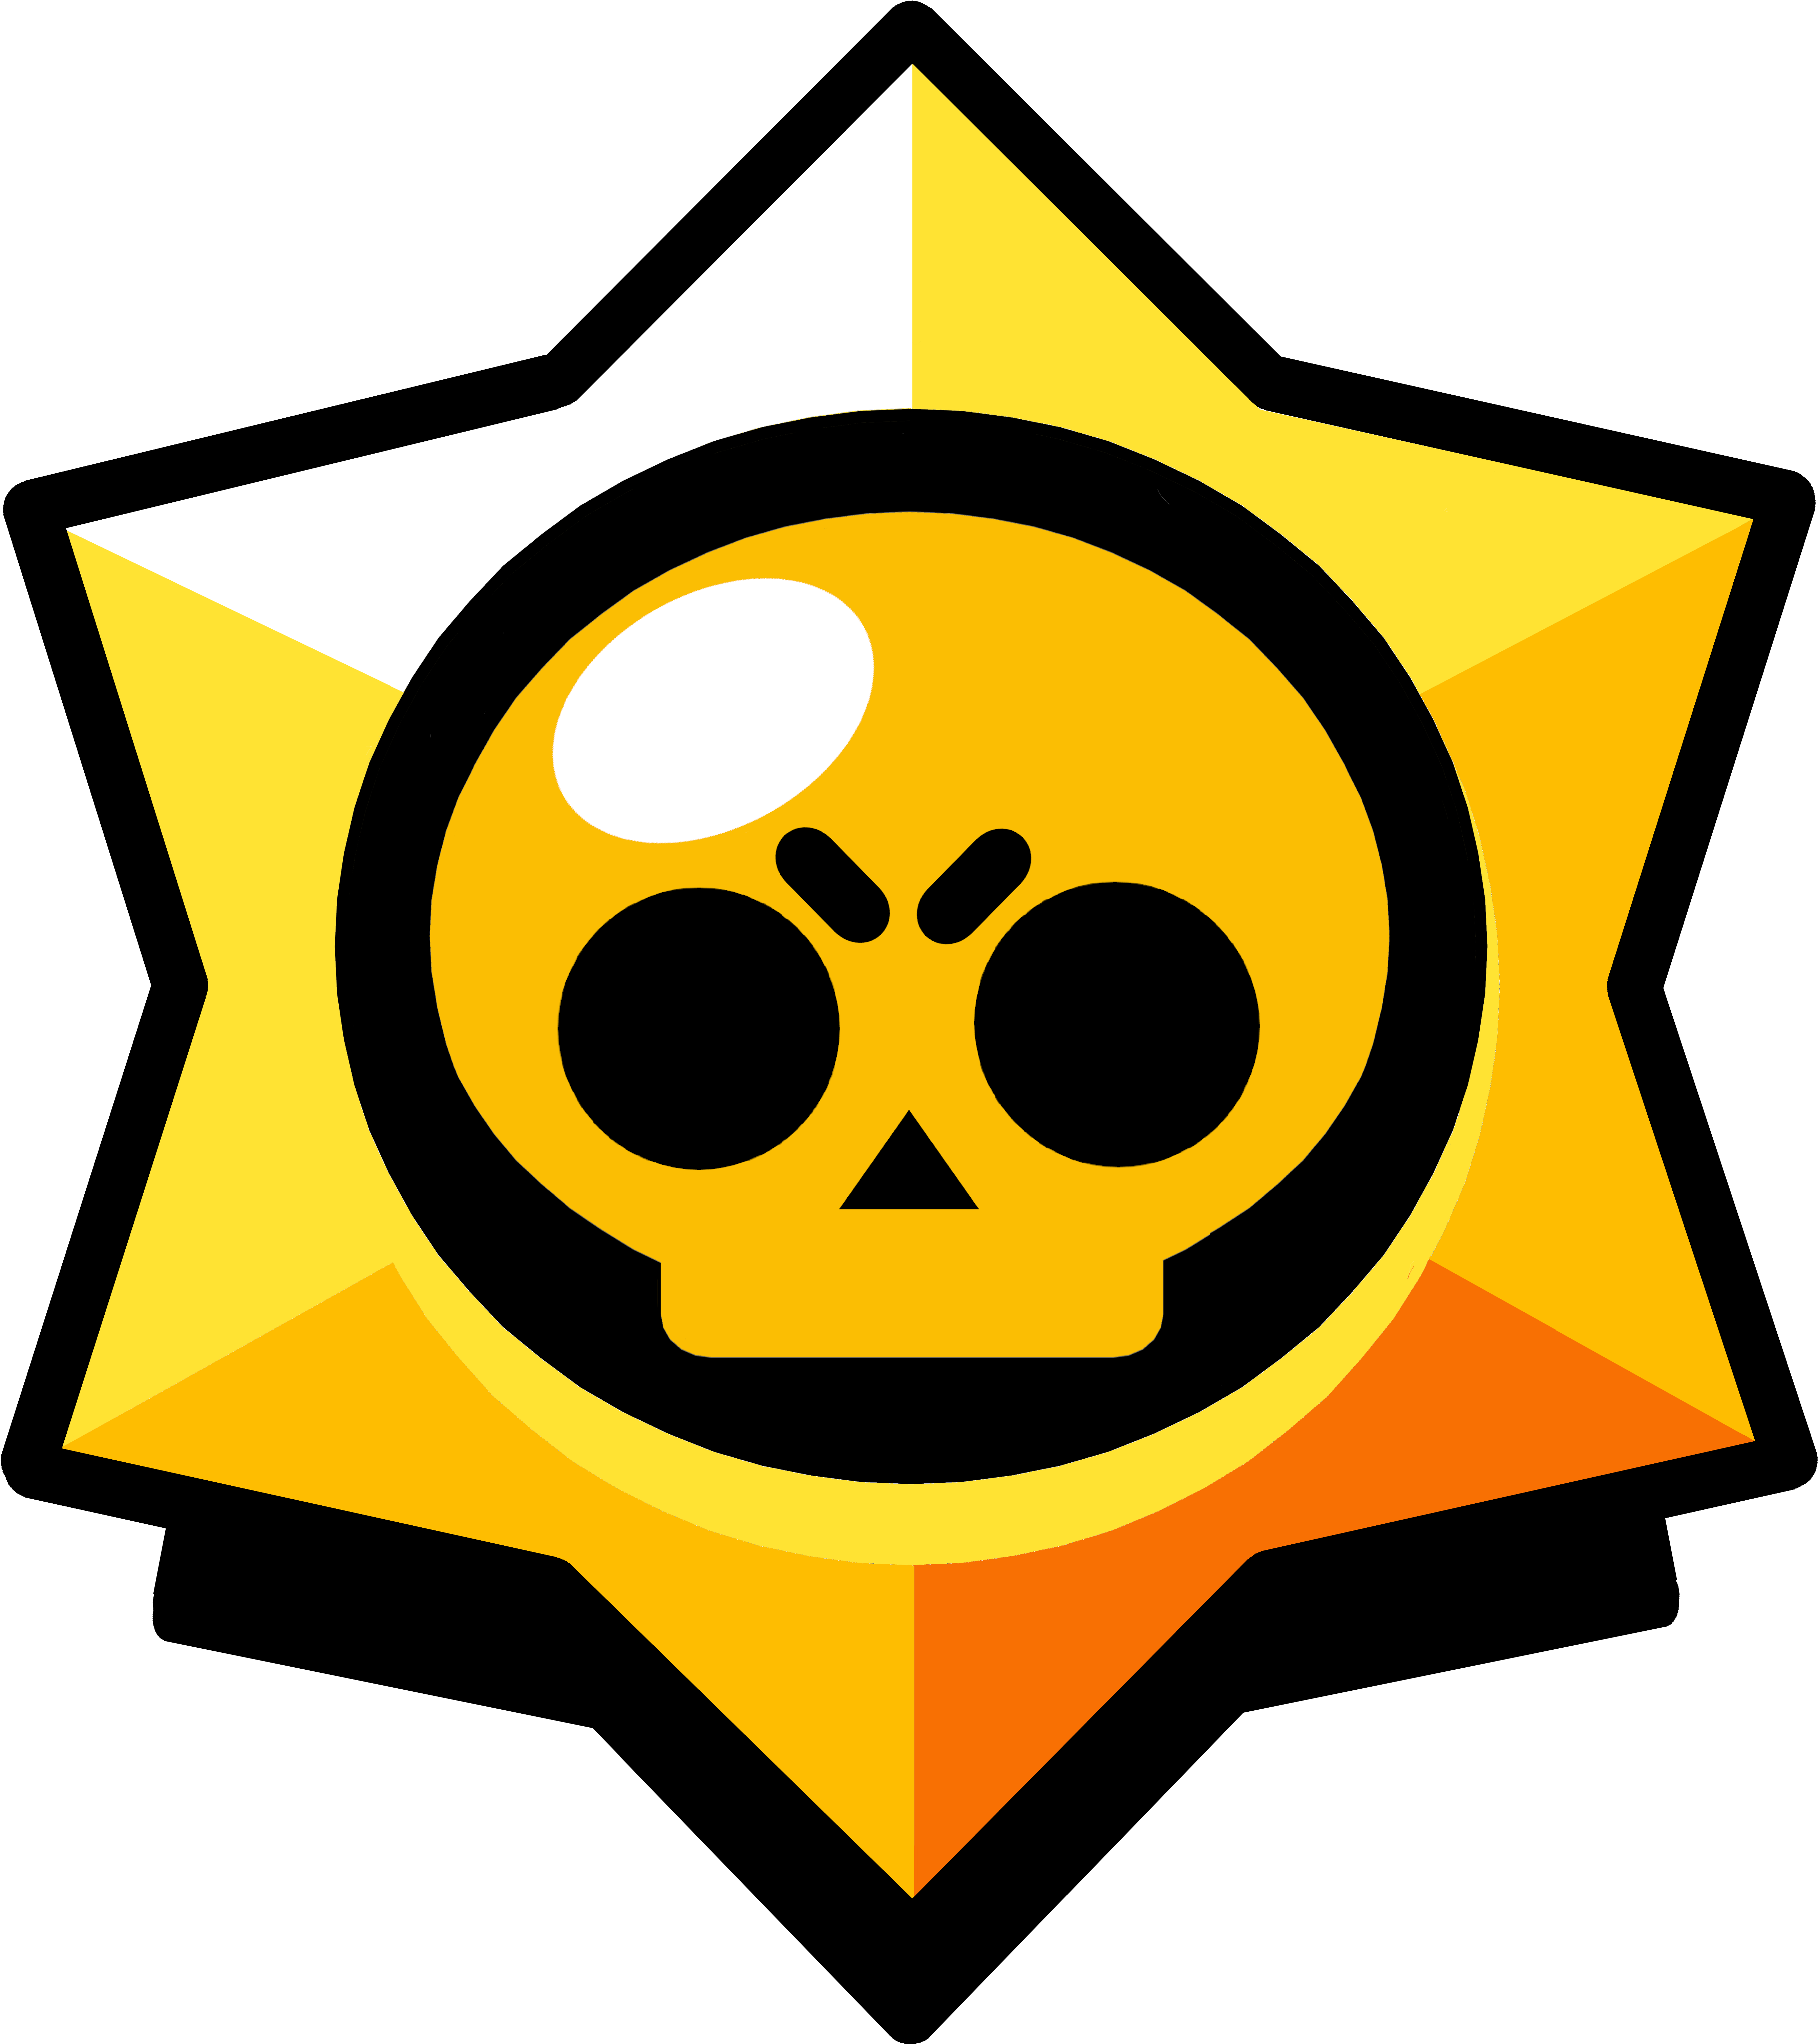 Brawl Stars Png & Free Brawl Stars.png Transparent Images #30152.